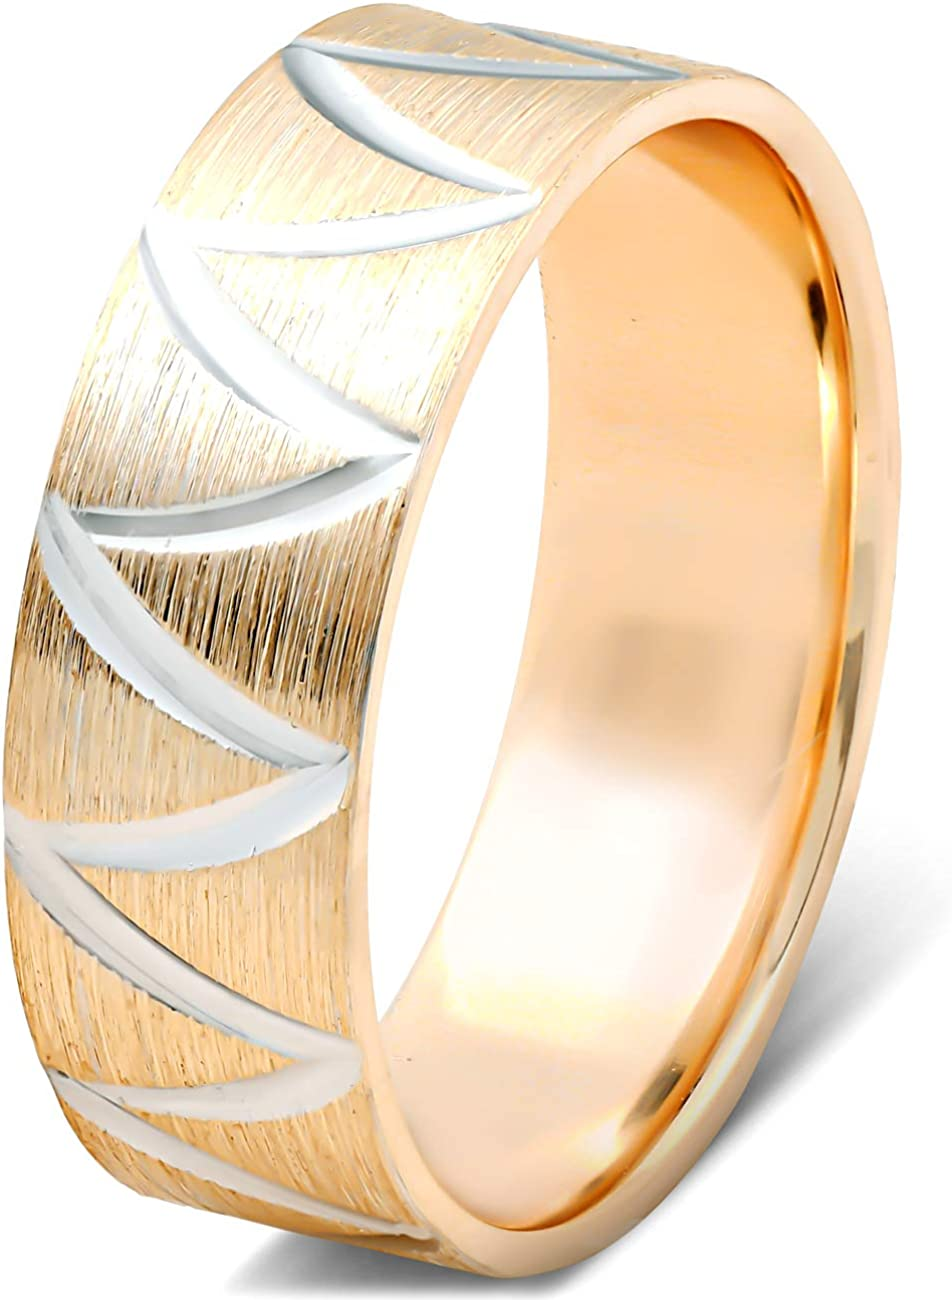 10k Yellow Gold Two Tone 6mm Flat Brushed Hand Carved Wave Mens Wedding Band